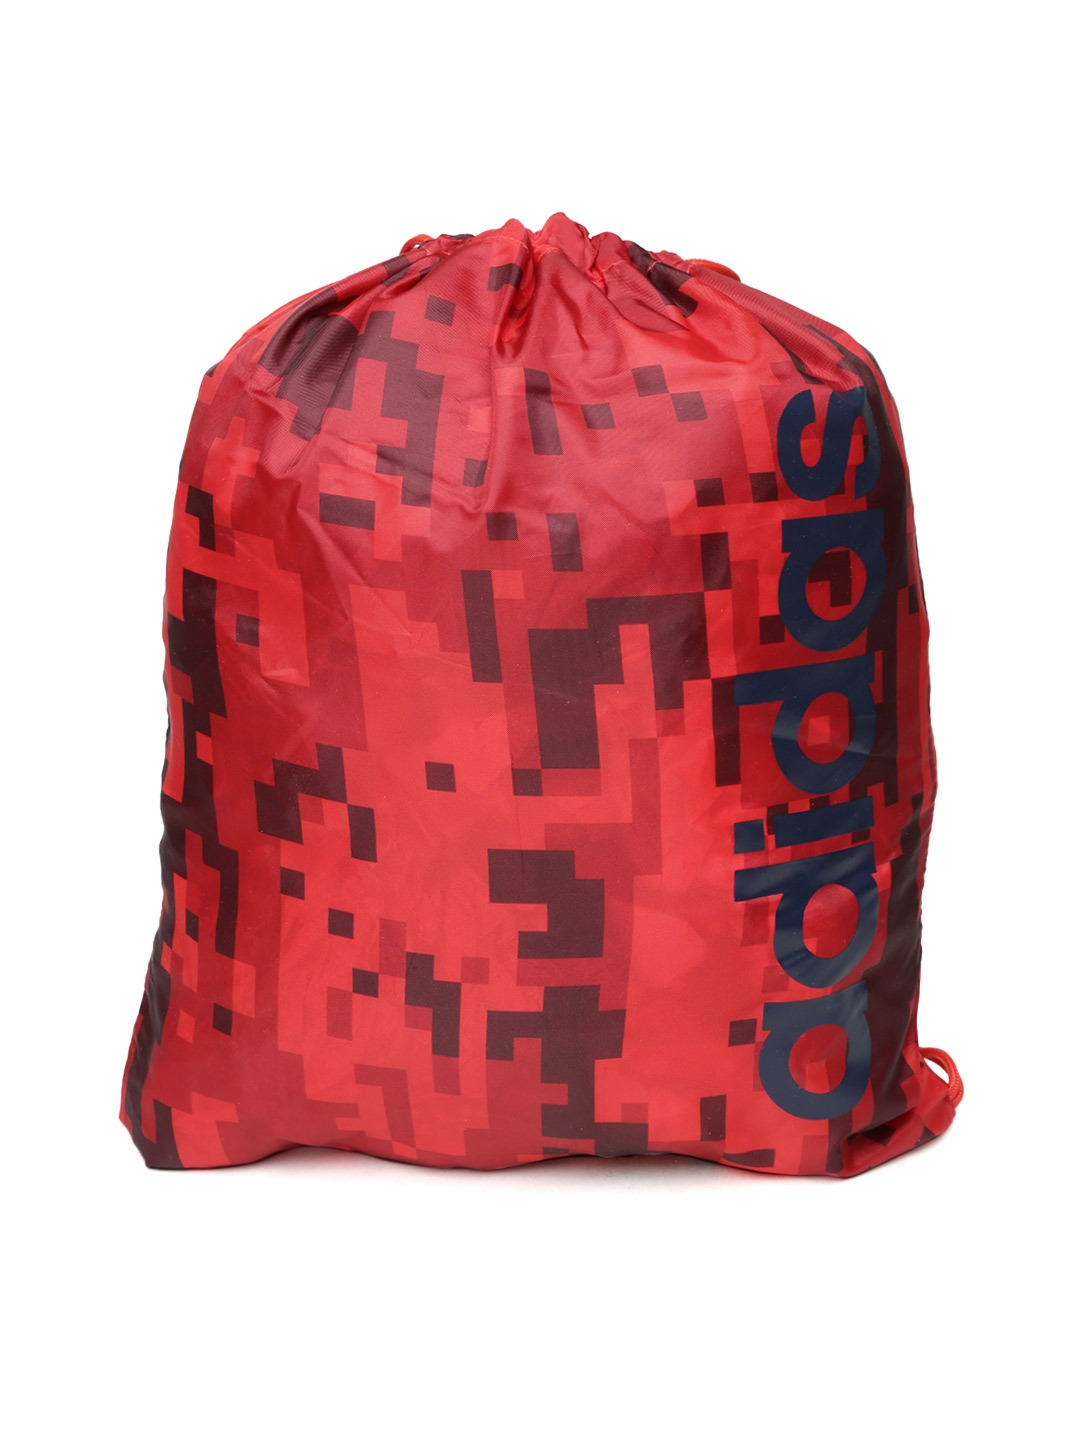 98f93b0b01 Buy ADIDAS NEO Men Red GS All Over Print Daily Printed Backpack ...